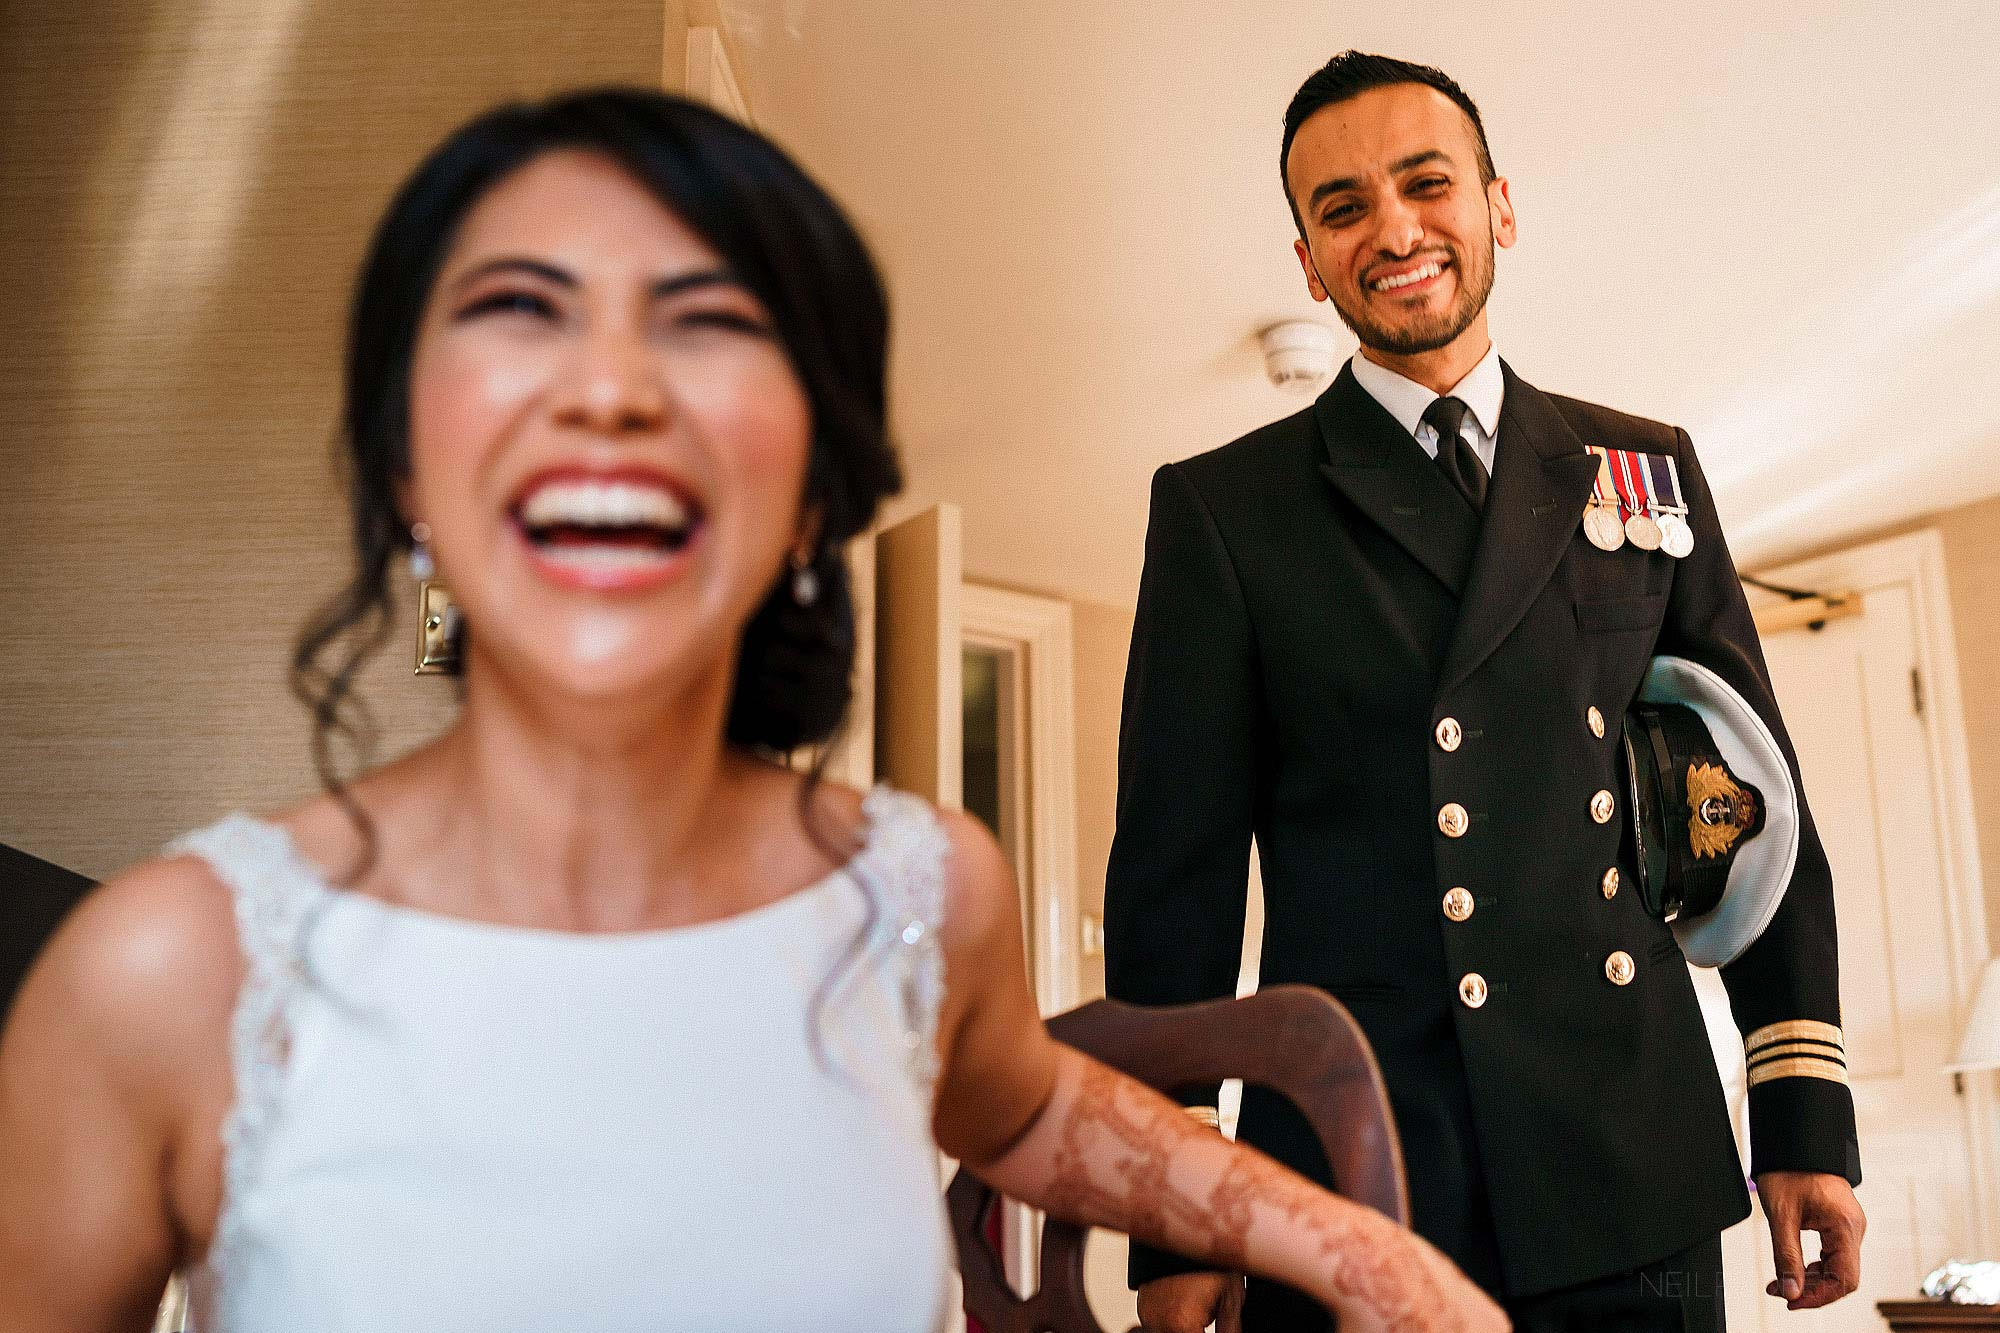 Indian bride and groom laughing